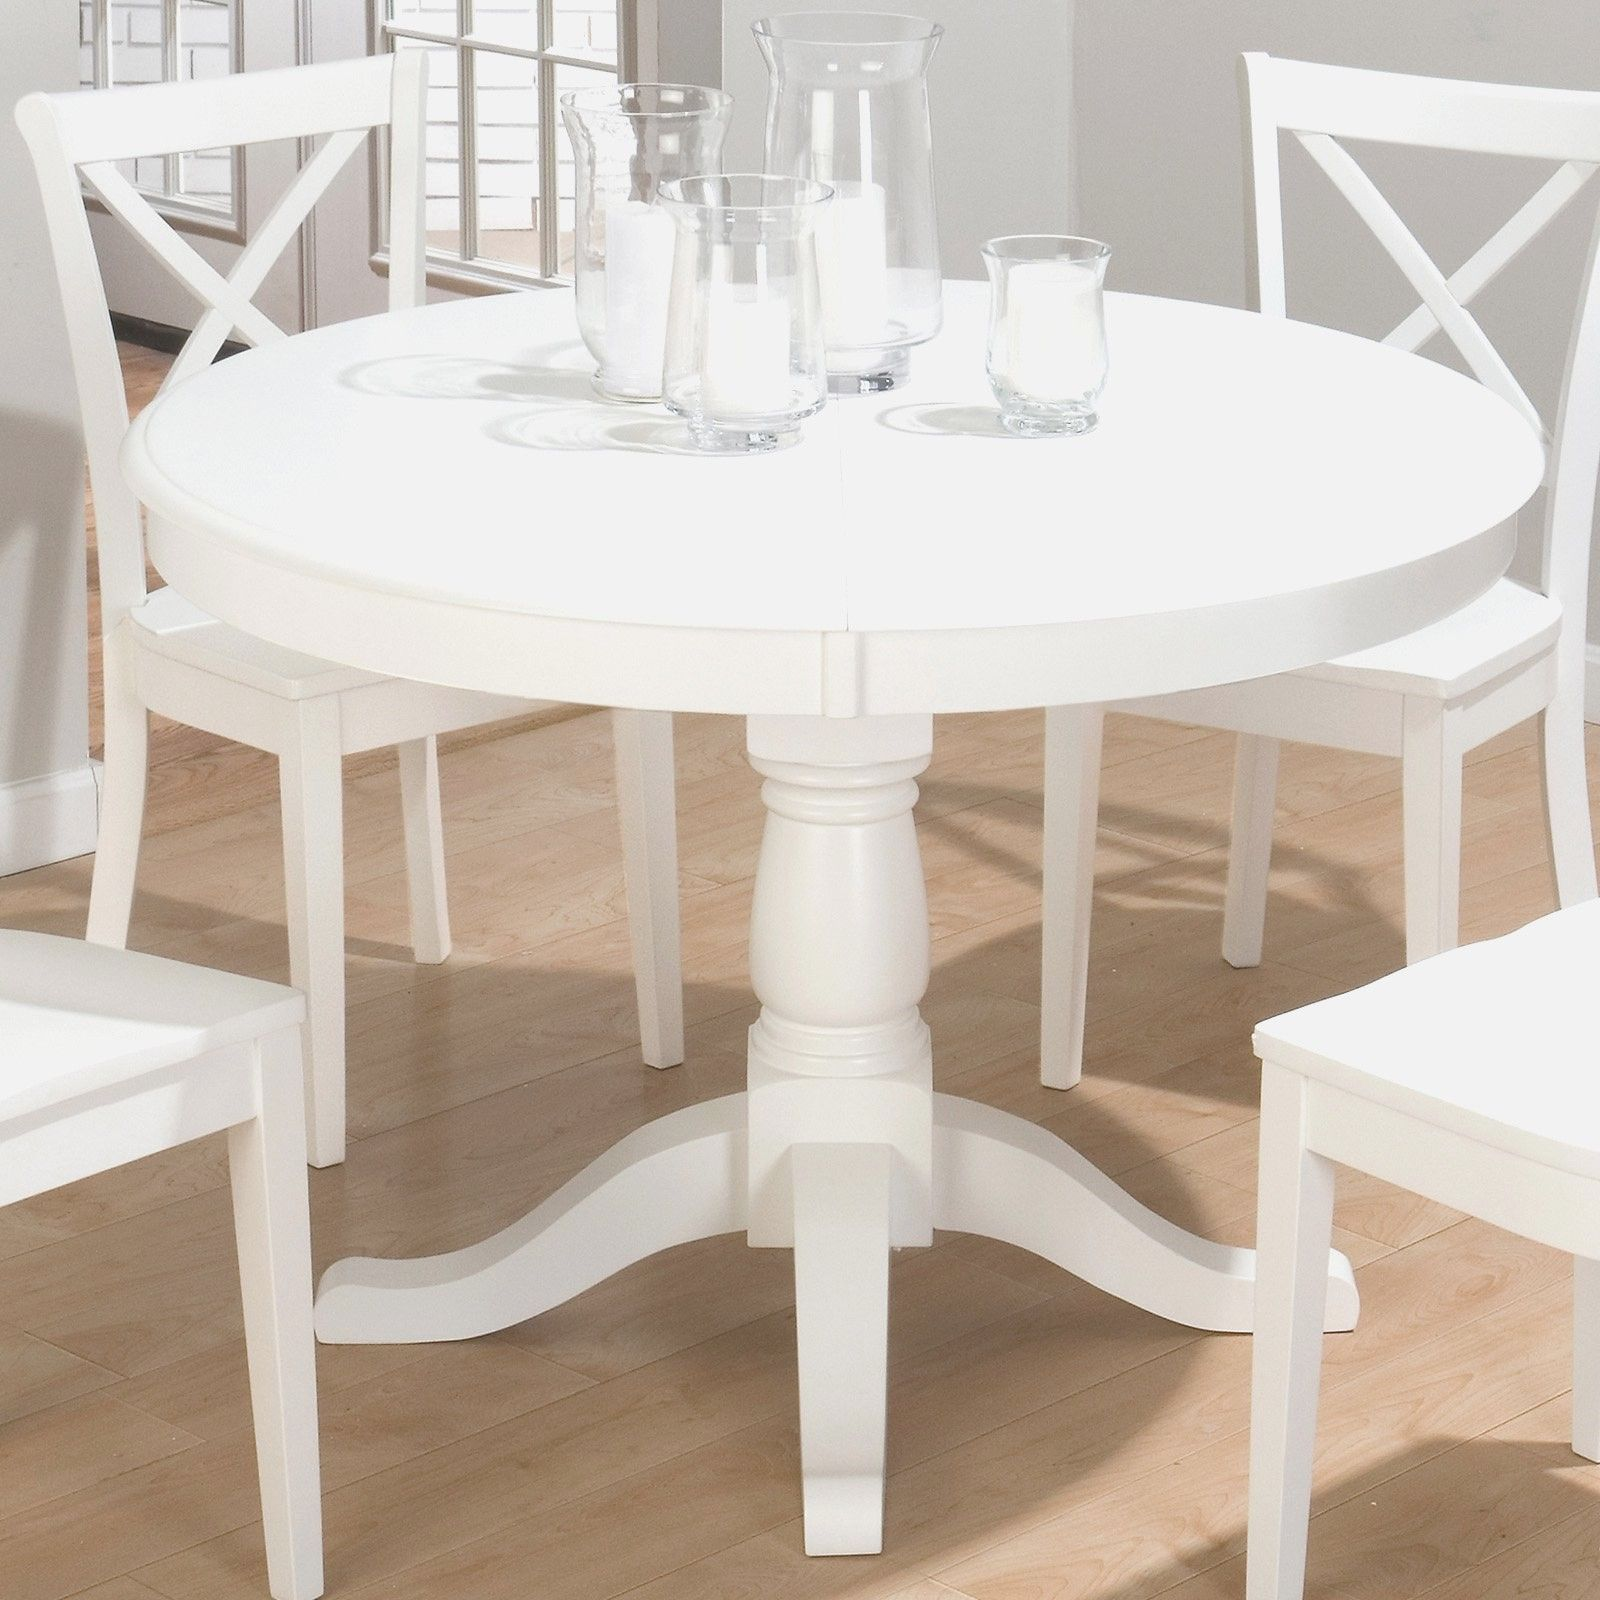 Small Round Kitchen Table Sets R Round Kitchen Table Sets Round Kitchen Table Sets Canada Round Kitchen Table Sets Kitchen Design Decor Ideas White